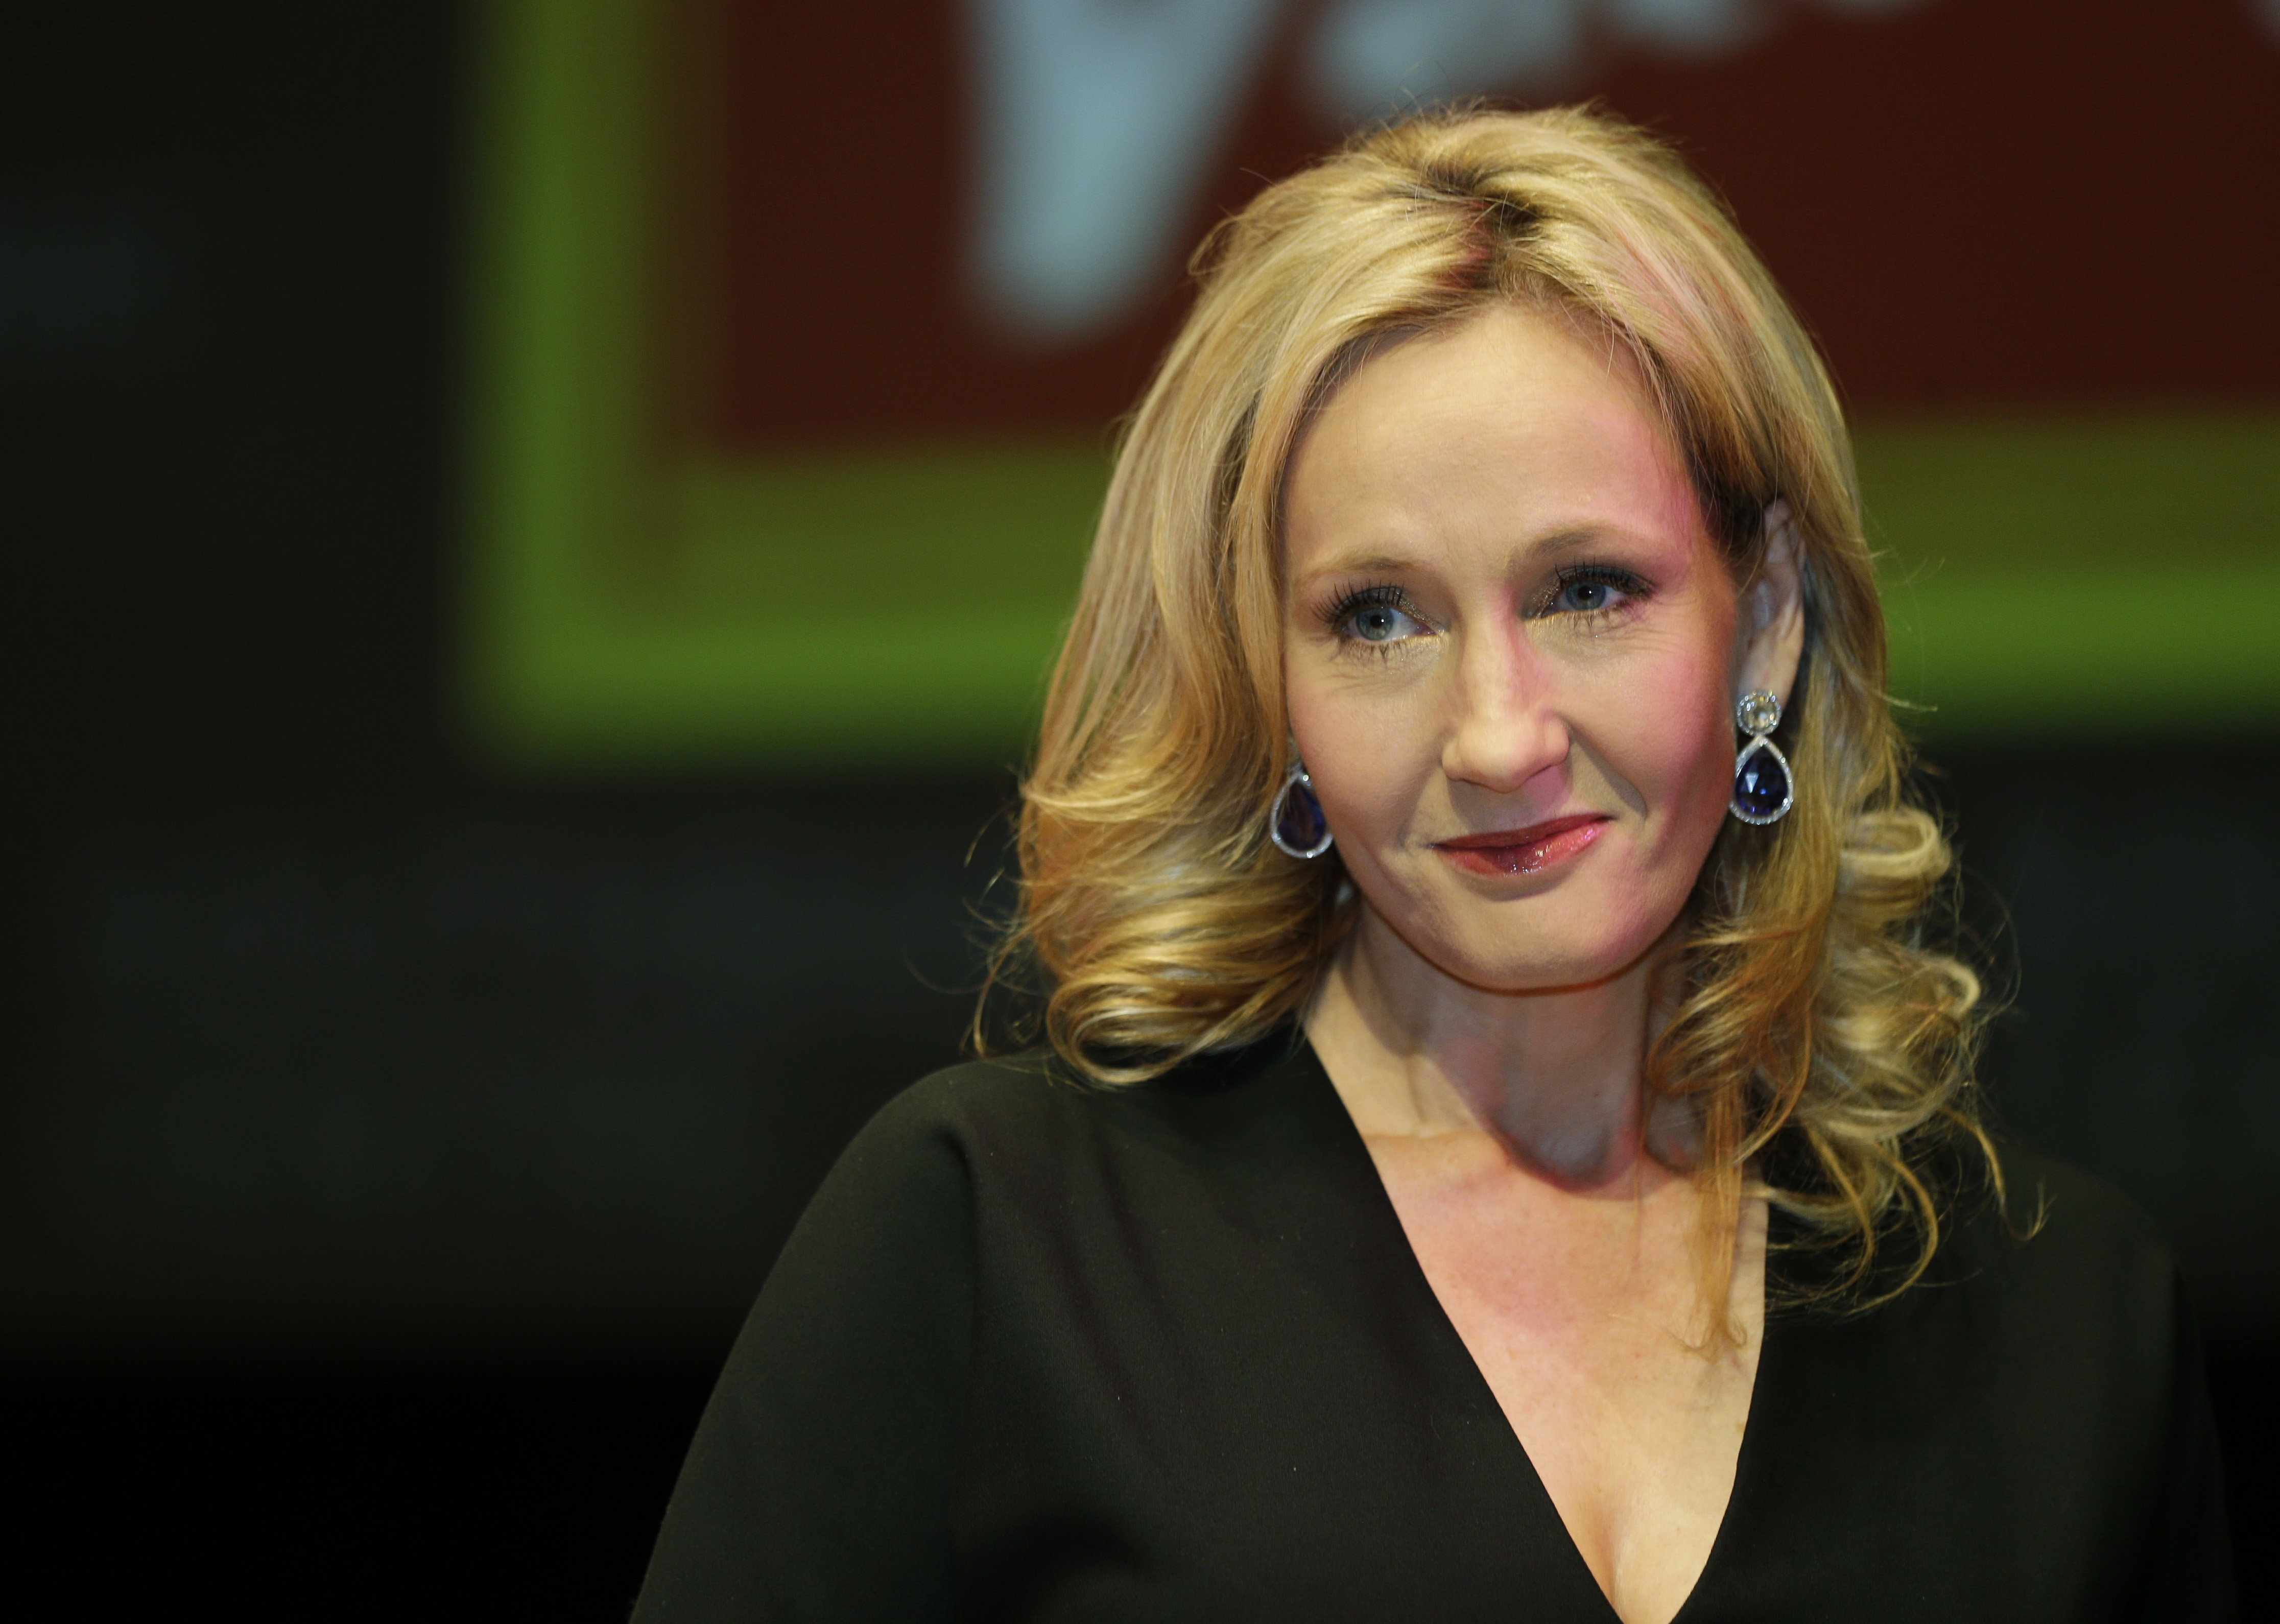 FILE - In this file photo dated Thursday, Sept. 27, 2012, British author J.K. Rowling poses for photographers during the unveiling of her new book, entitled: 'The Casual Vacancy', at the Southbank Centre in London. (AP Photo/Lefteris Pitarakis, FILE)